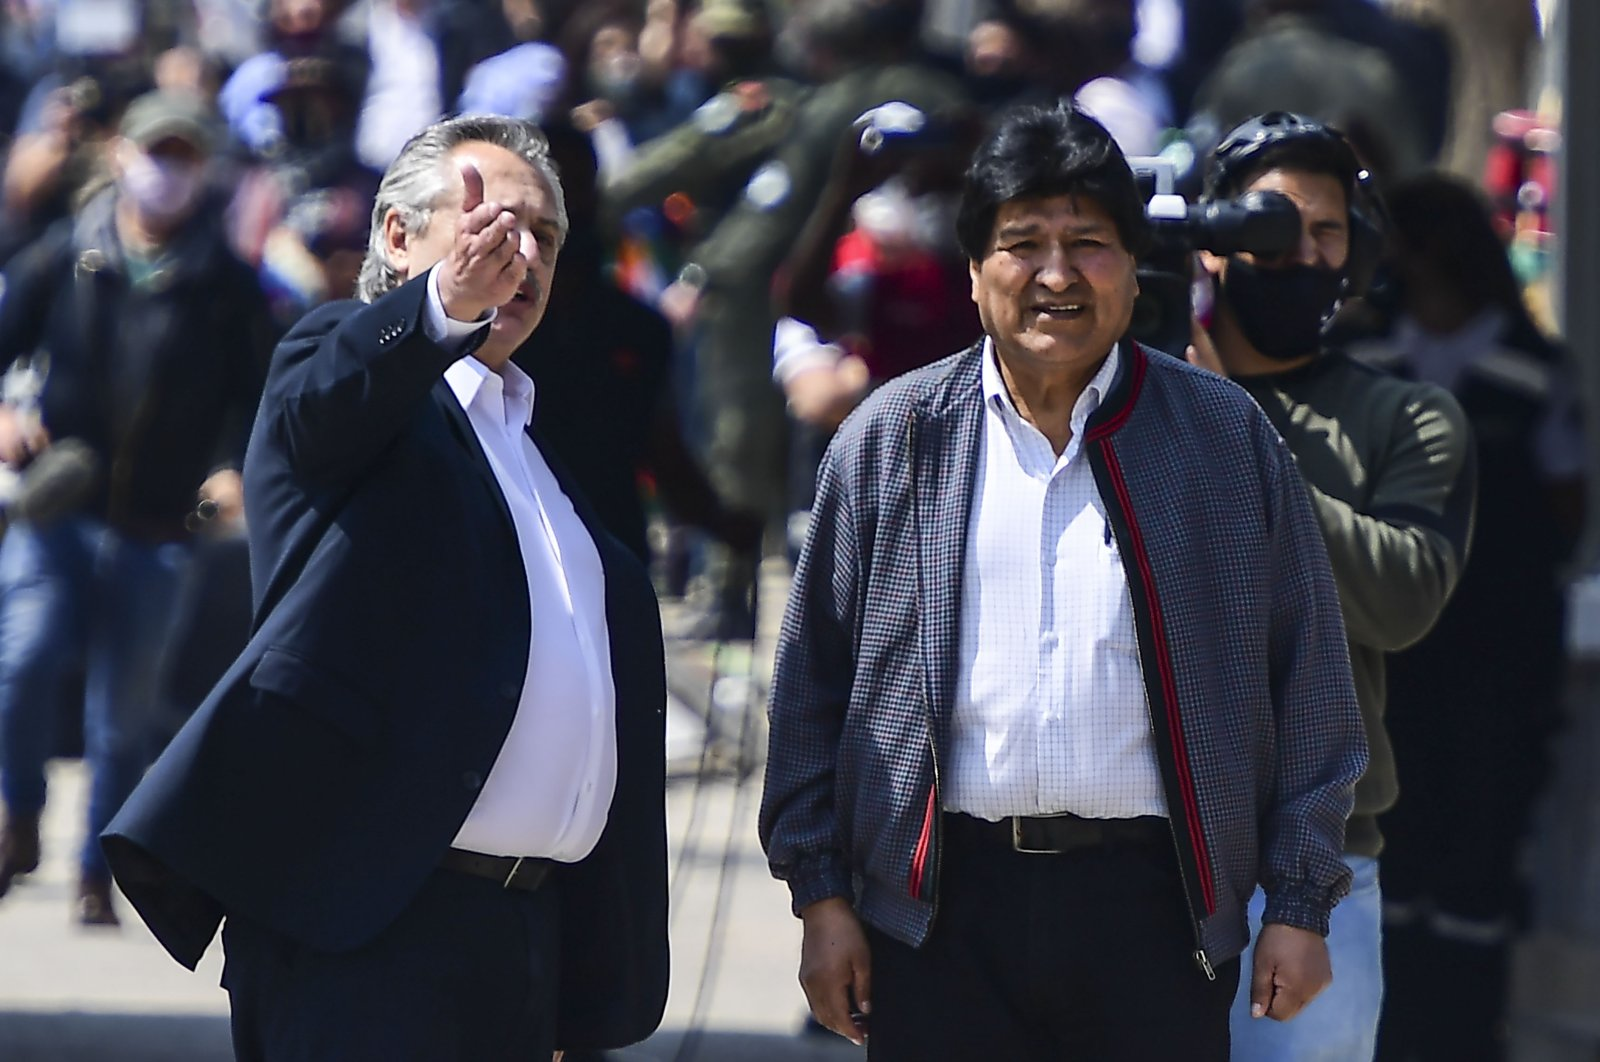 Bolivia's former president Evo Morales (R) is accompanied by Argentine President Alberto Fernandez as he arrives back in his country from Argentina, Villazon, Nov. 9, 2020. (AFP Photo)